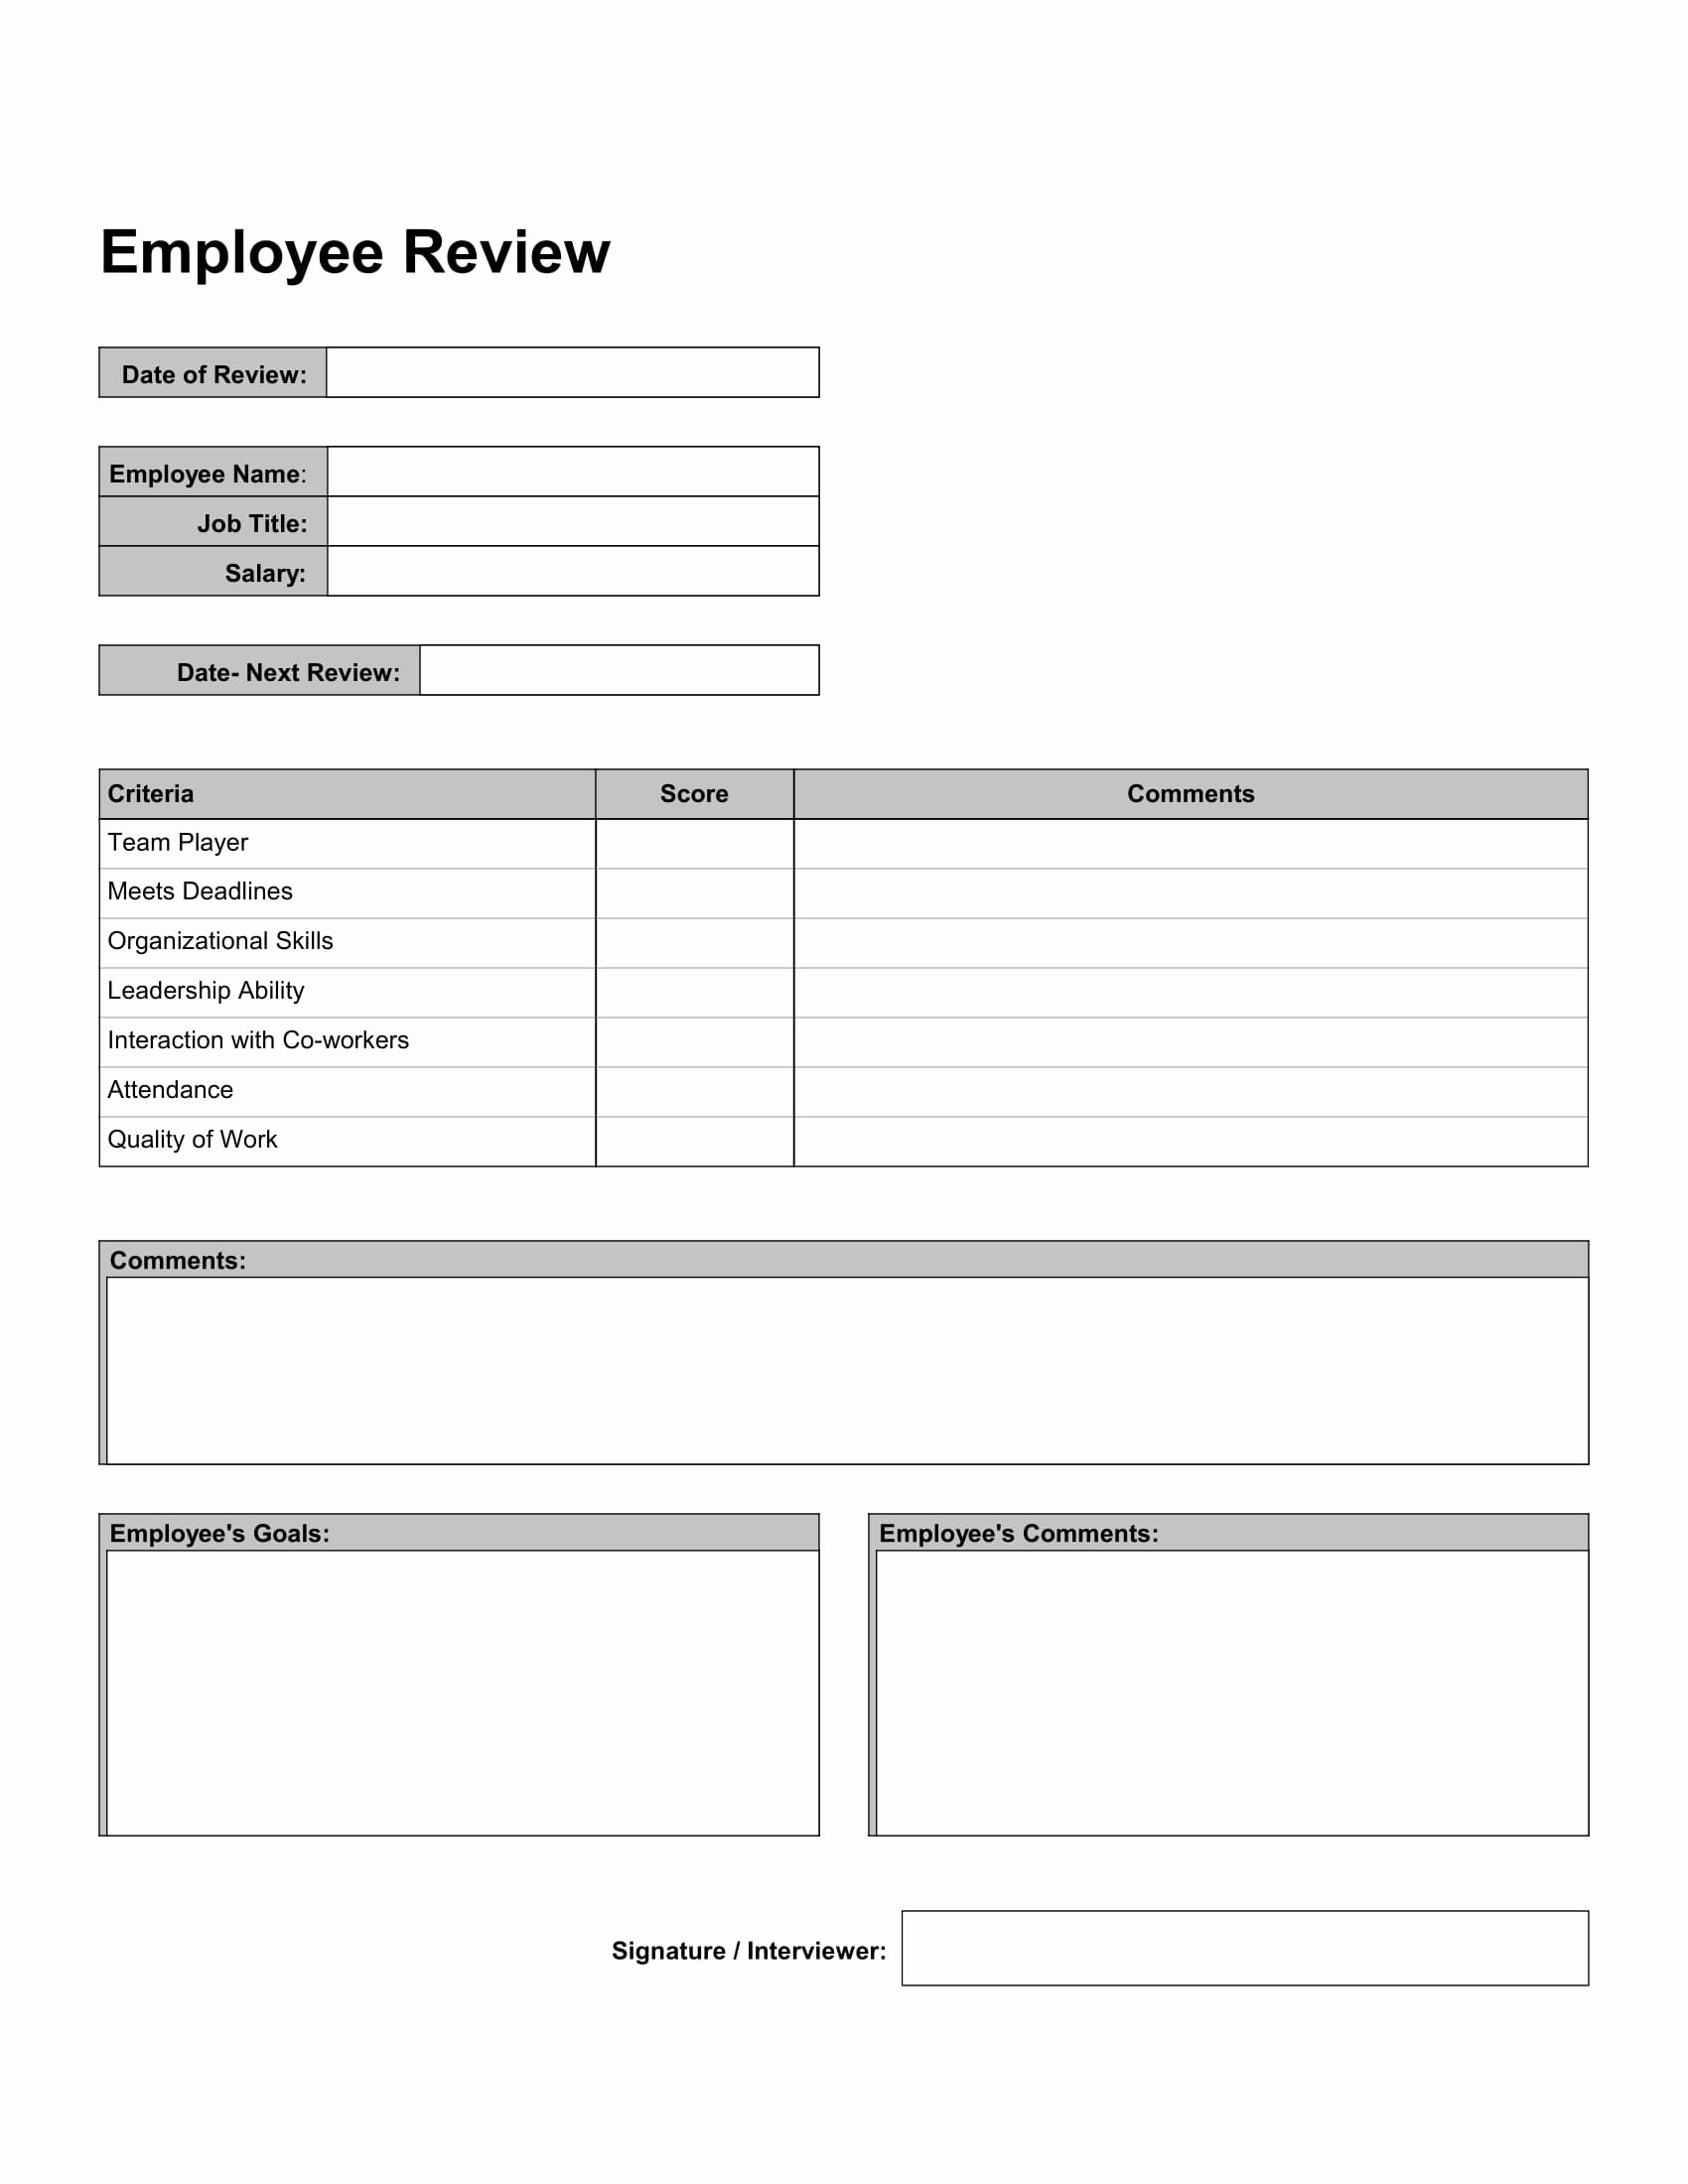 Employee Performance Appraisal form Template Fresh 10 Work Review forms Free Word Pdf format Download